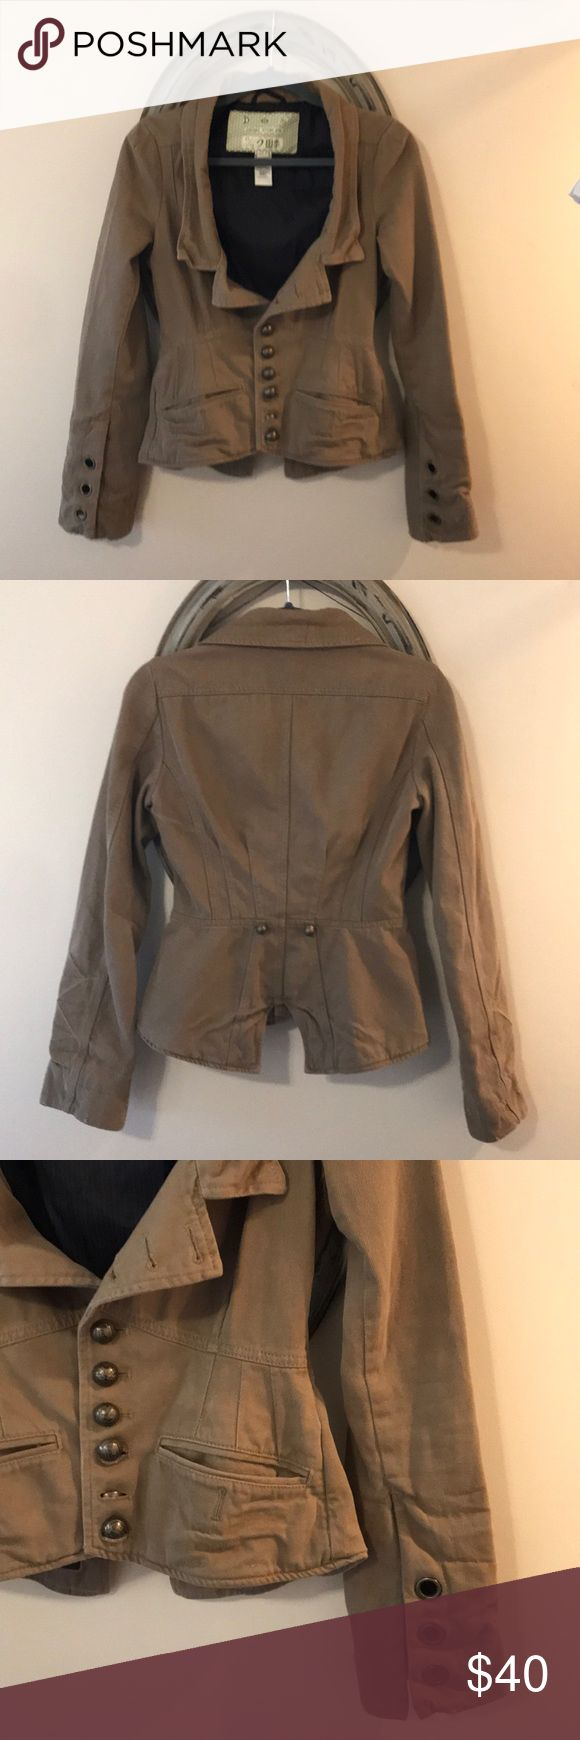 Diesel distressed jacket, one of a kind! Very unique distressed olive canvas jacket - Victorian meets fatigues.  Lots of metal detailing. Arms are long and bell out a bit with slit (see pic). Can be worn open or buttoned. It is a cool peice, I just don't have anywhere to wear it anymore. Diesel Jackets & Coats Blazers